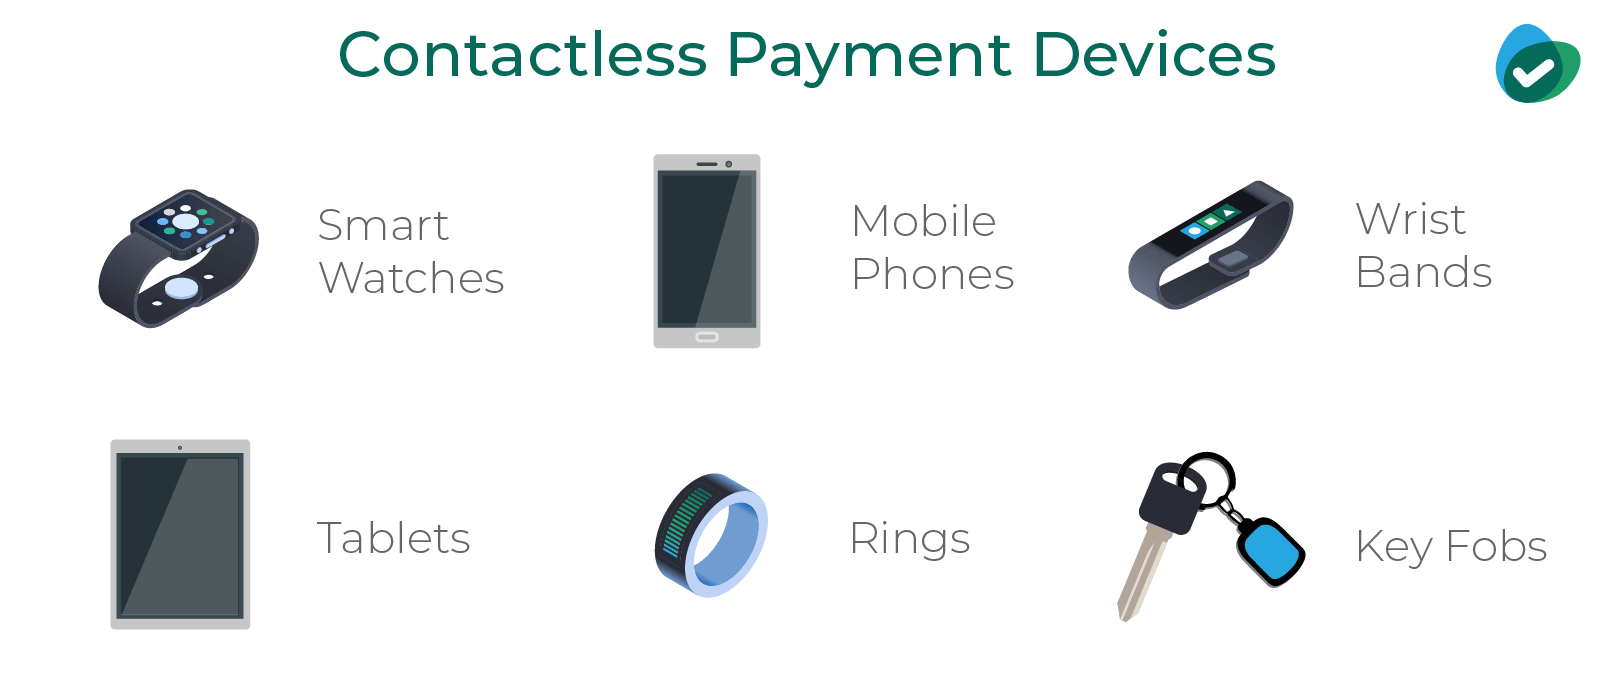 Contacless Payment Device